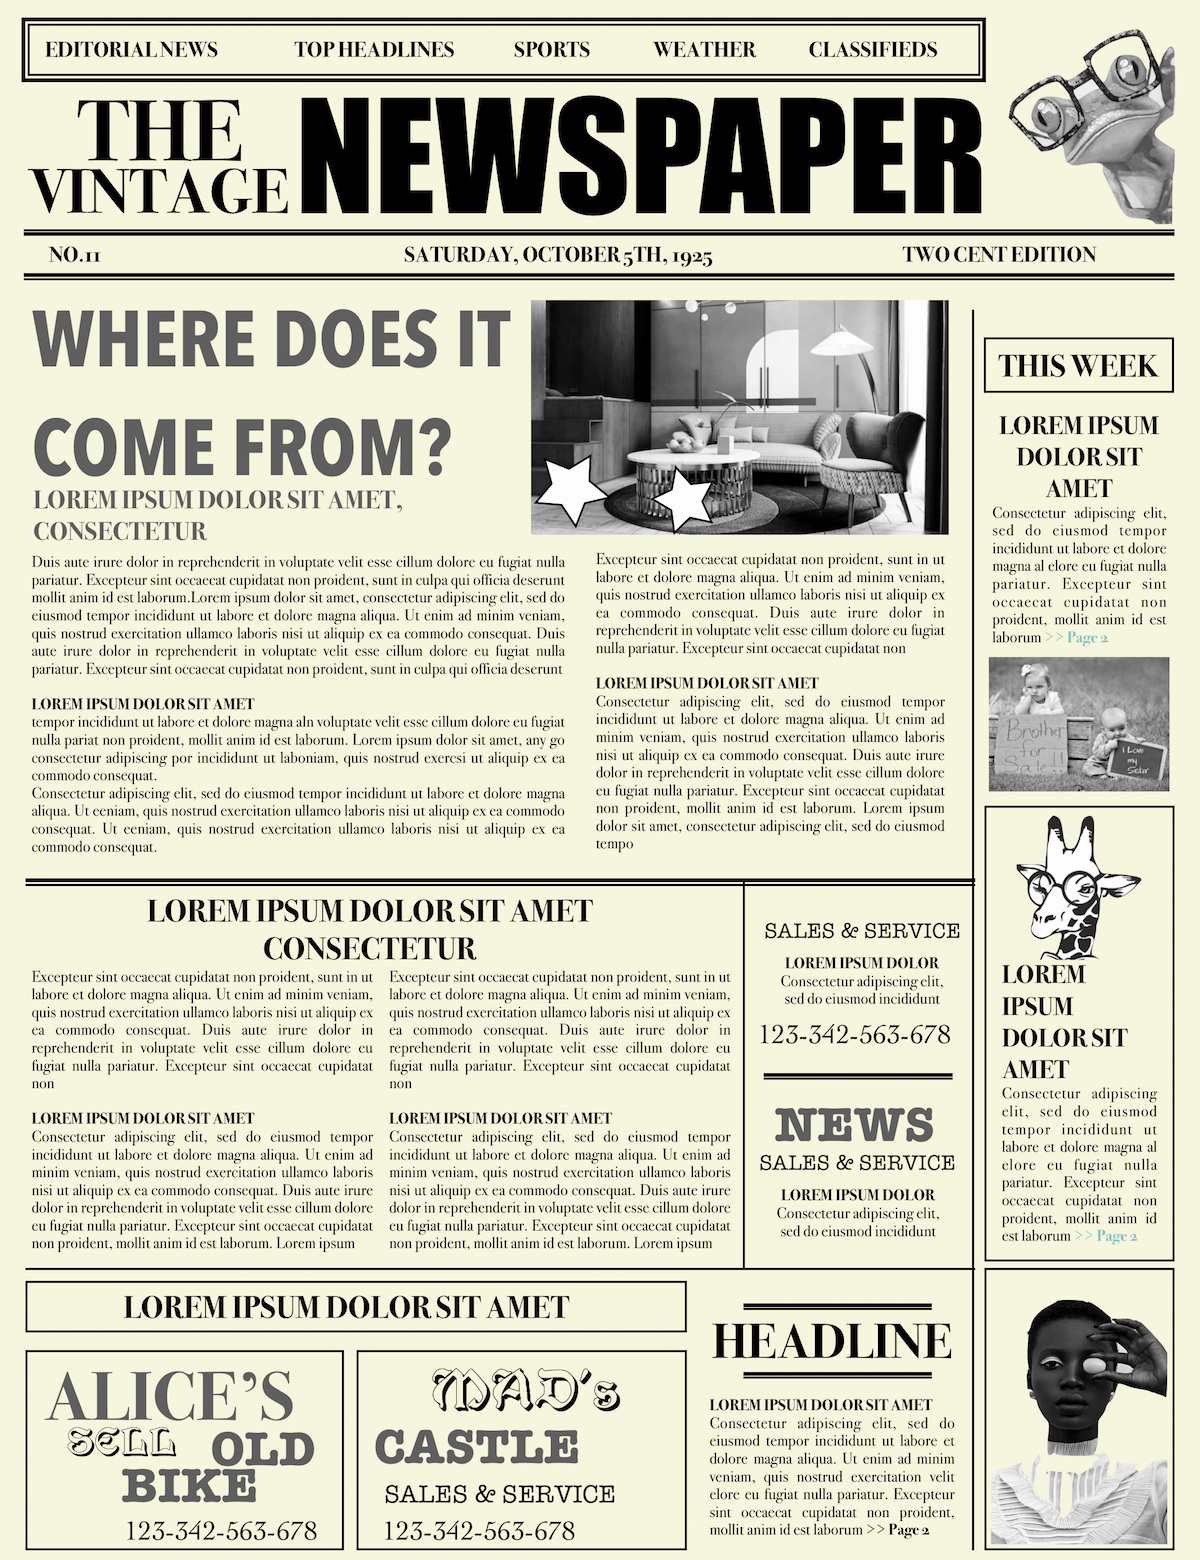 New York Times Newspaper Template Google Docs Inspirational Newspaper Layout Newspaper format Newspaper Generator Free